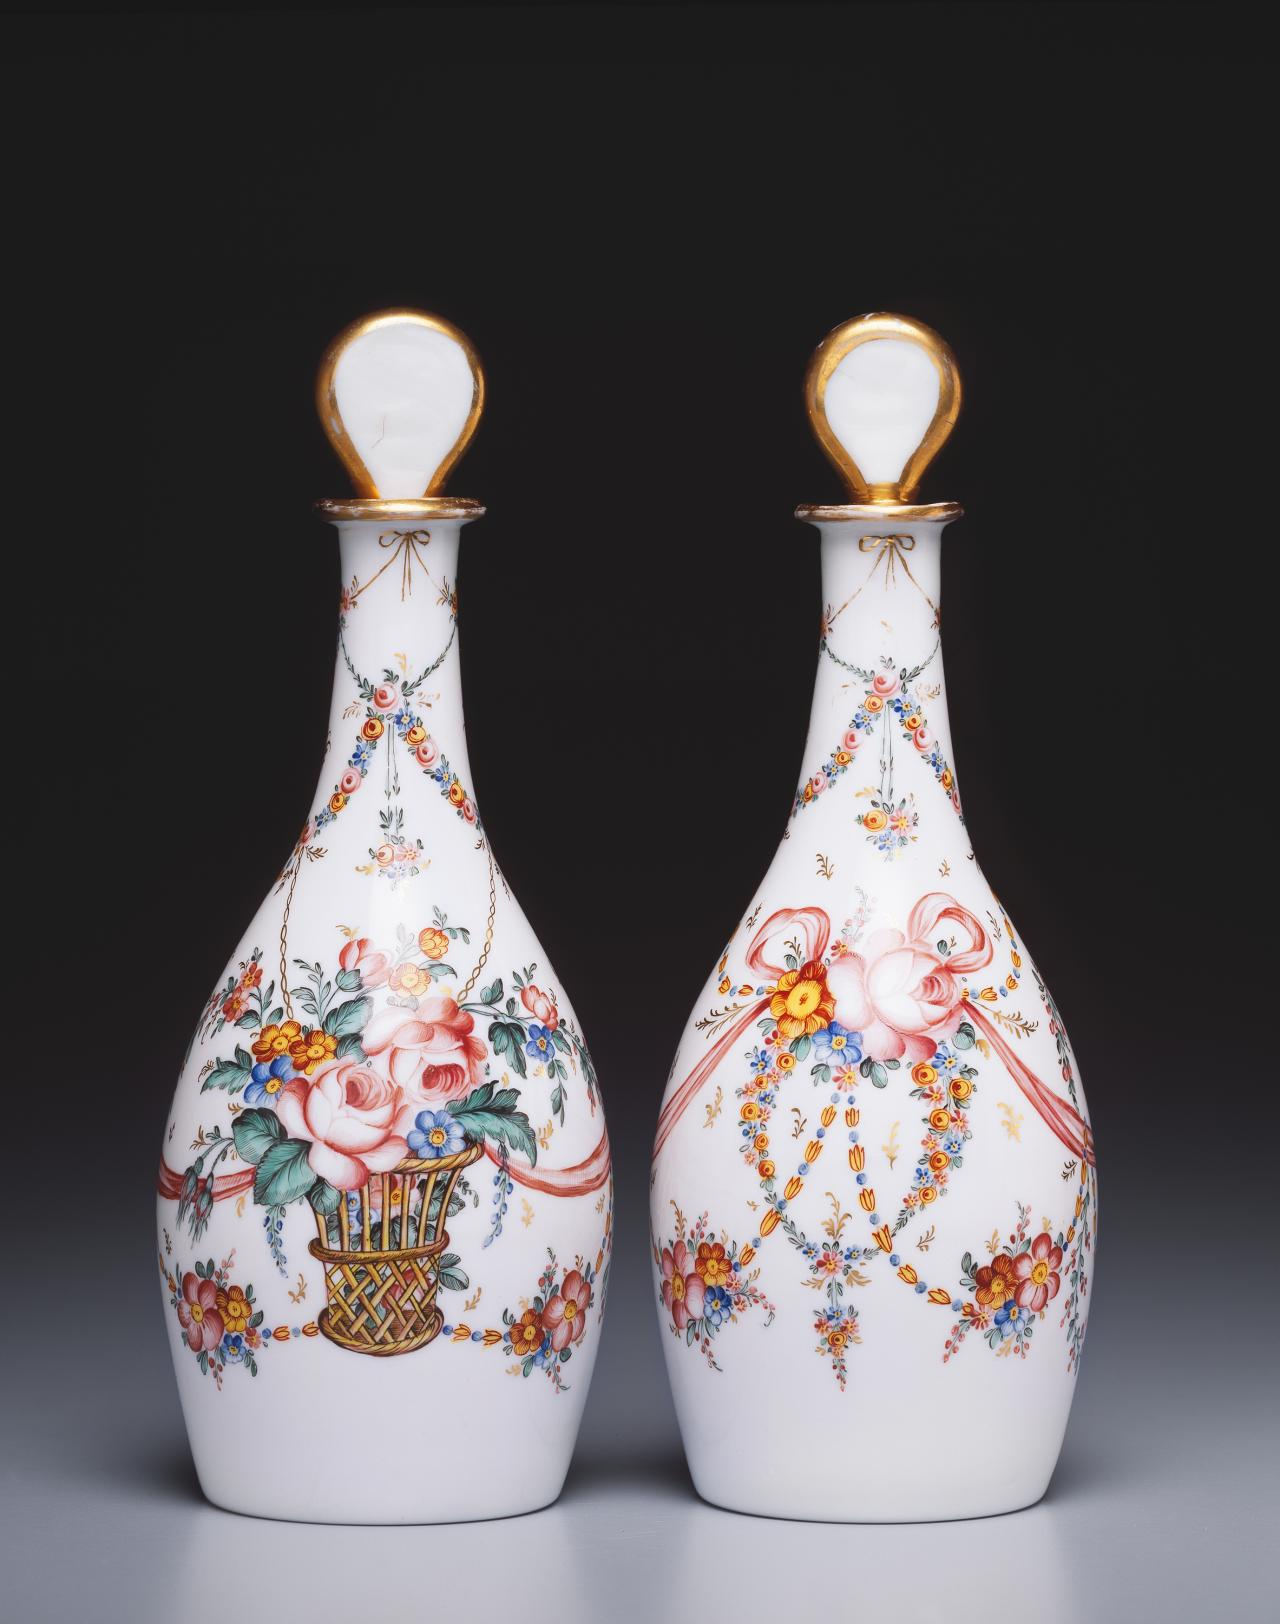 Pair of decanters